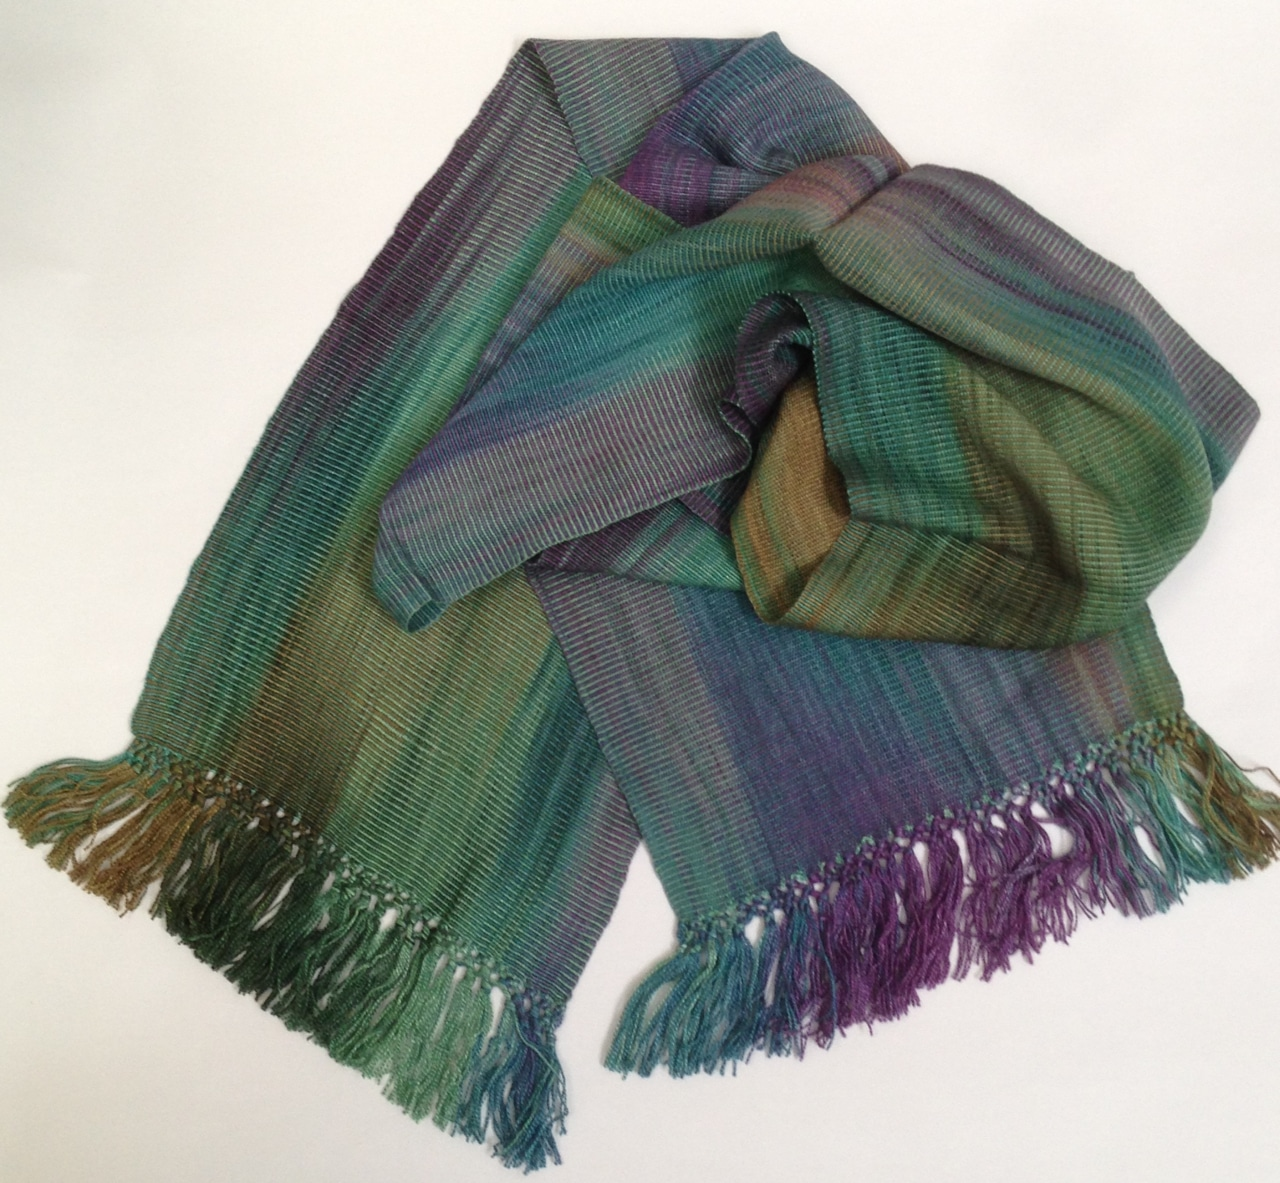 Green, Purple, Blue - Lightweight Bamboo Handwoven Scarf 8 x 68